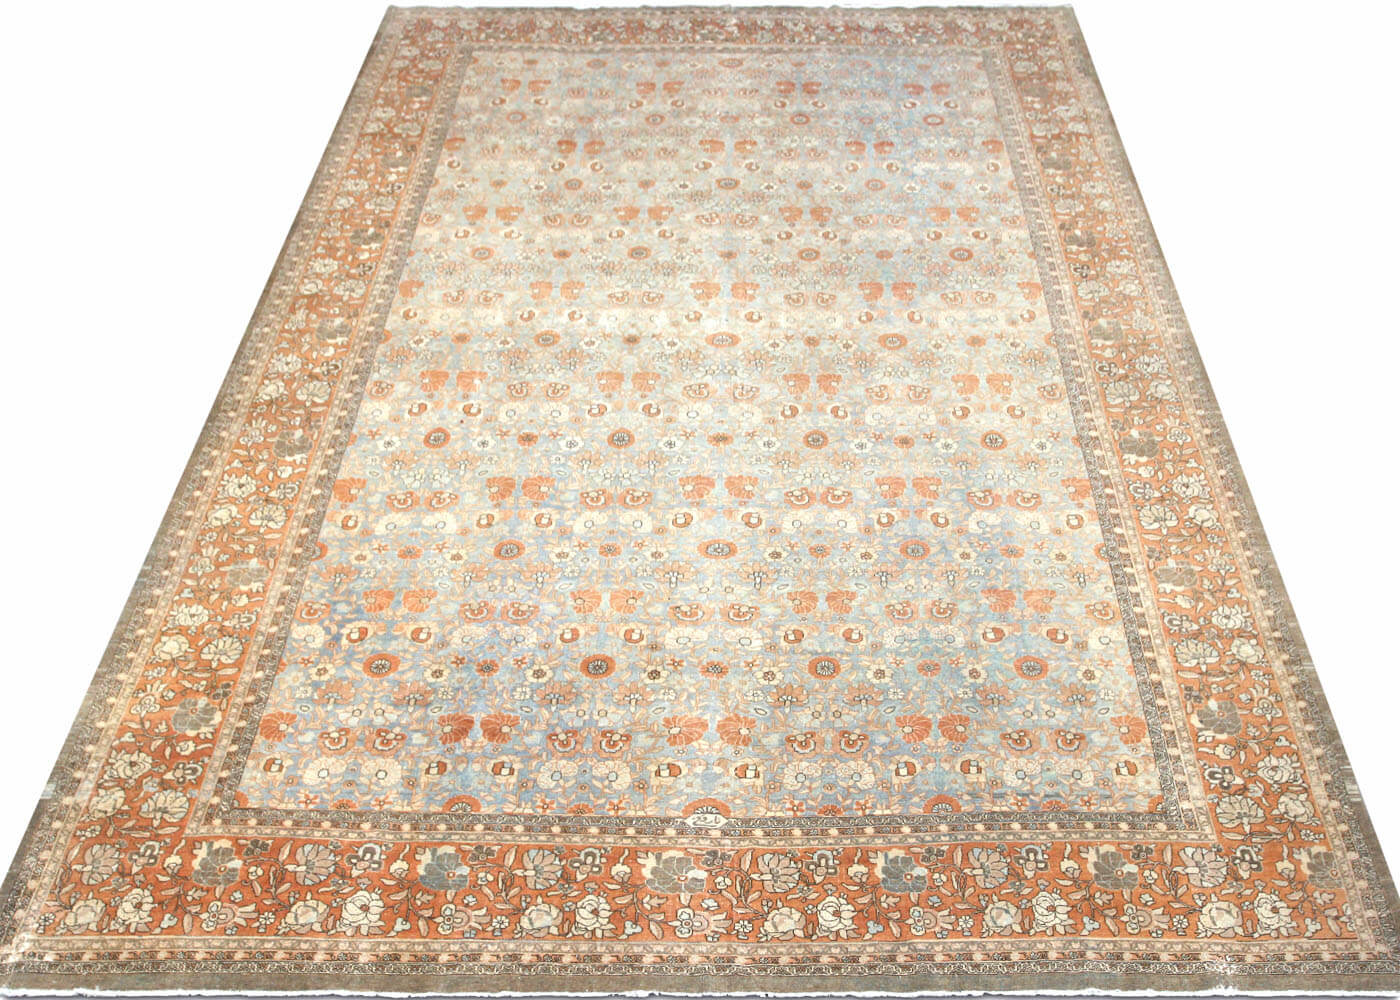 "Semi Antique Persian Tabriz Carpet - 11'5"" x 17'5"""